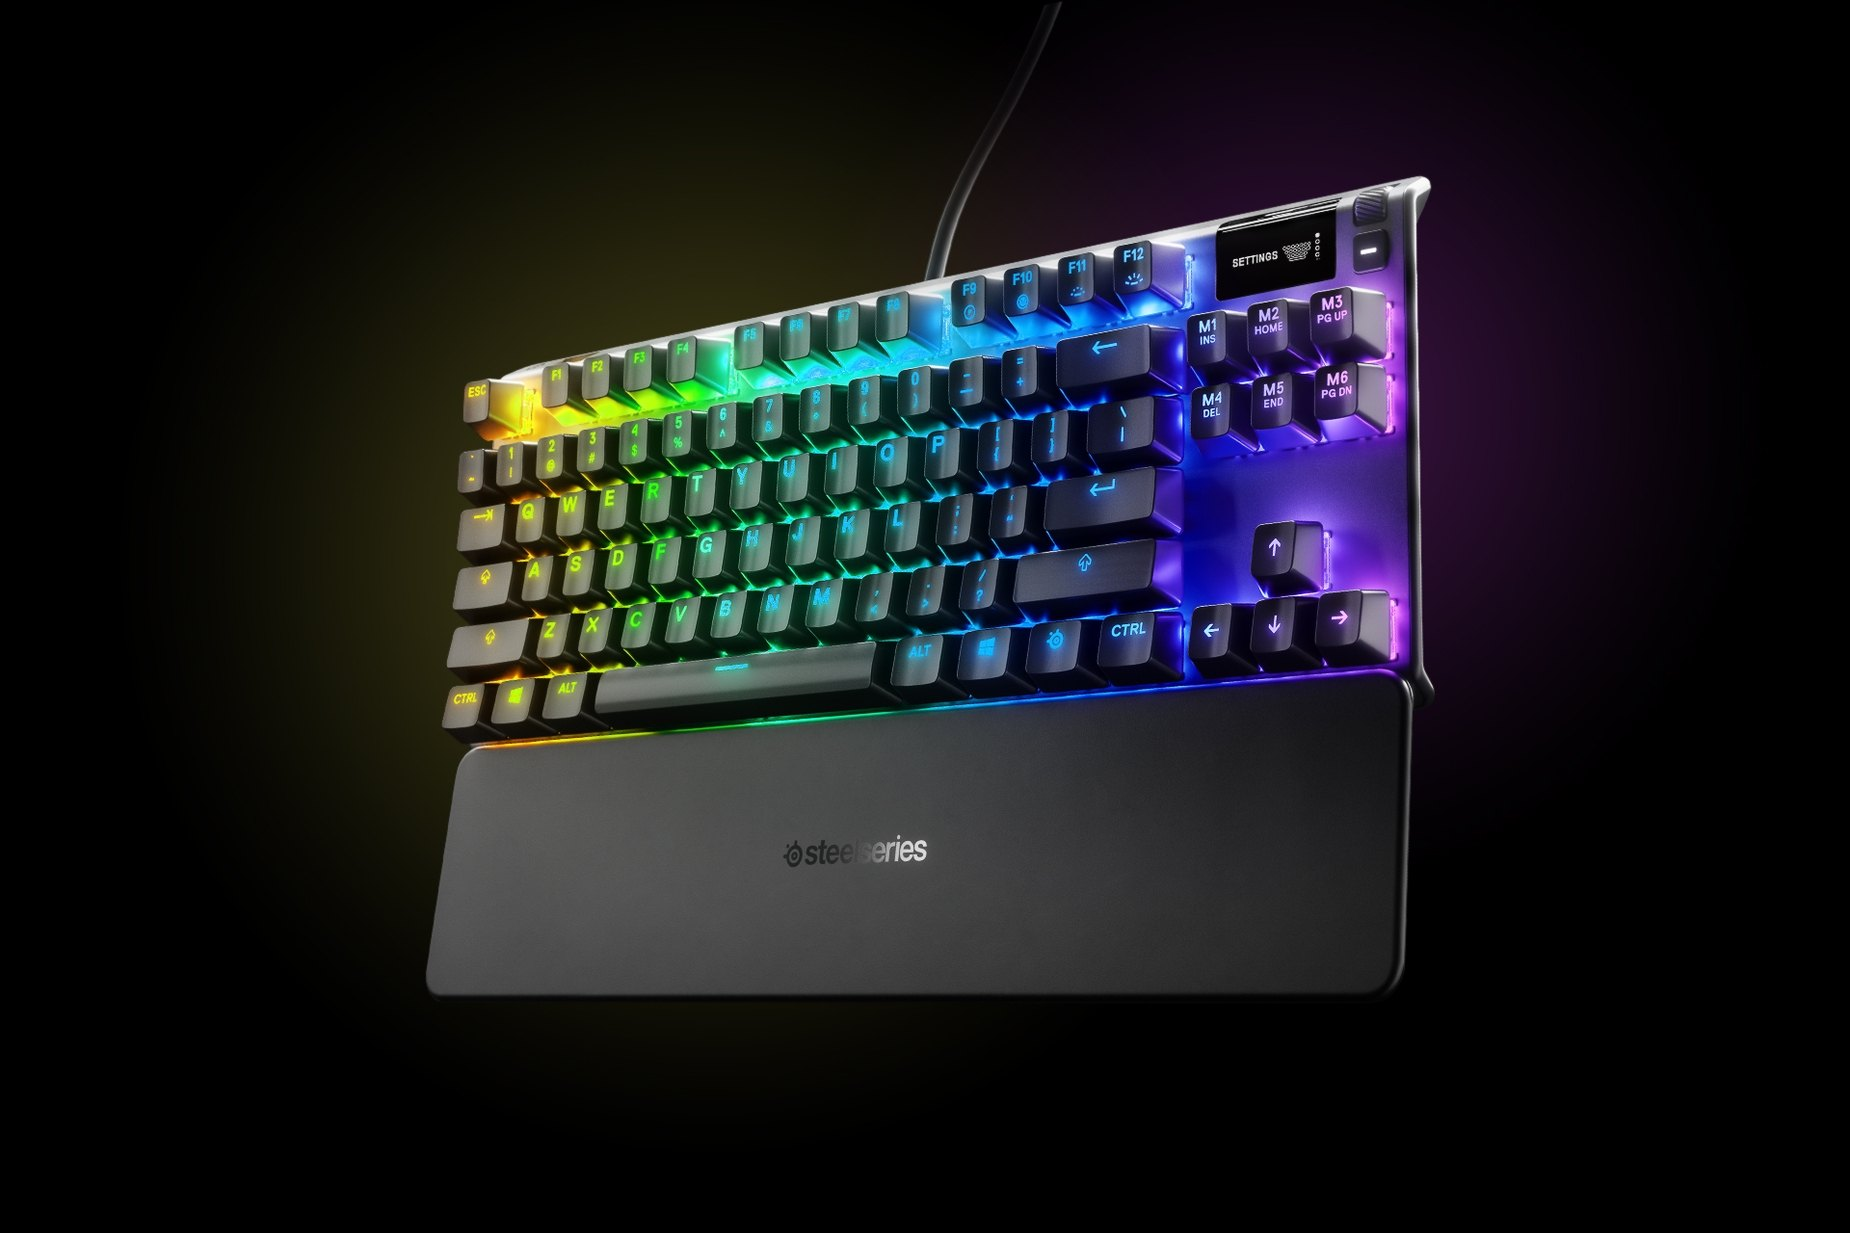 Fransızca - Apex 7 TKL (Kırmızı Anahtar) gaming keyboard with the illumination lit up on dark background, also shows the OLED screen and controls used to change settings and adjust audio